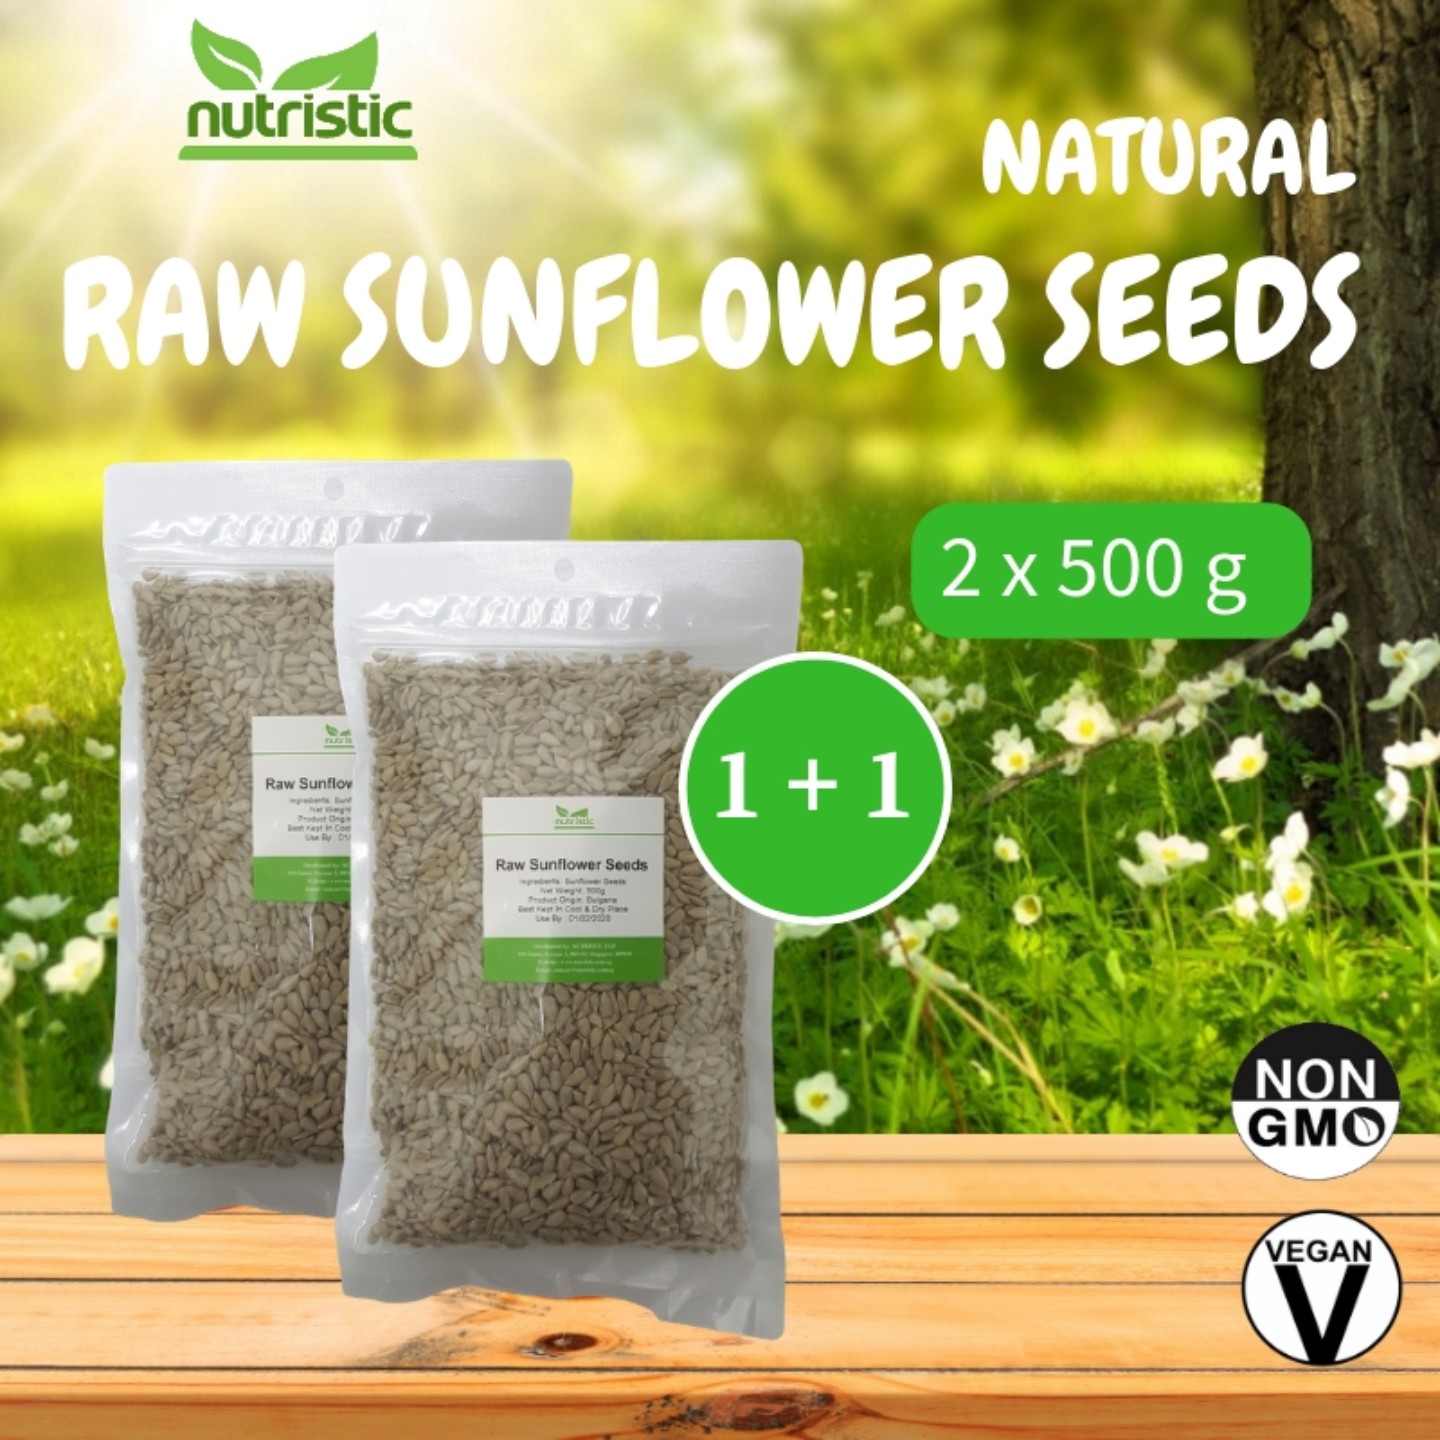 Natural Raw Sunflower Seeds 500g x2 - Value Bundle 1+1